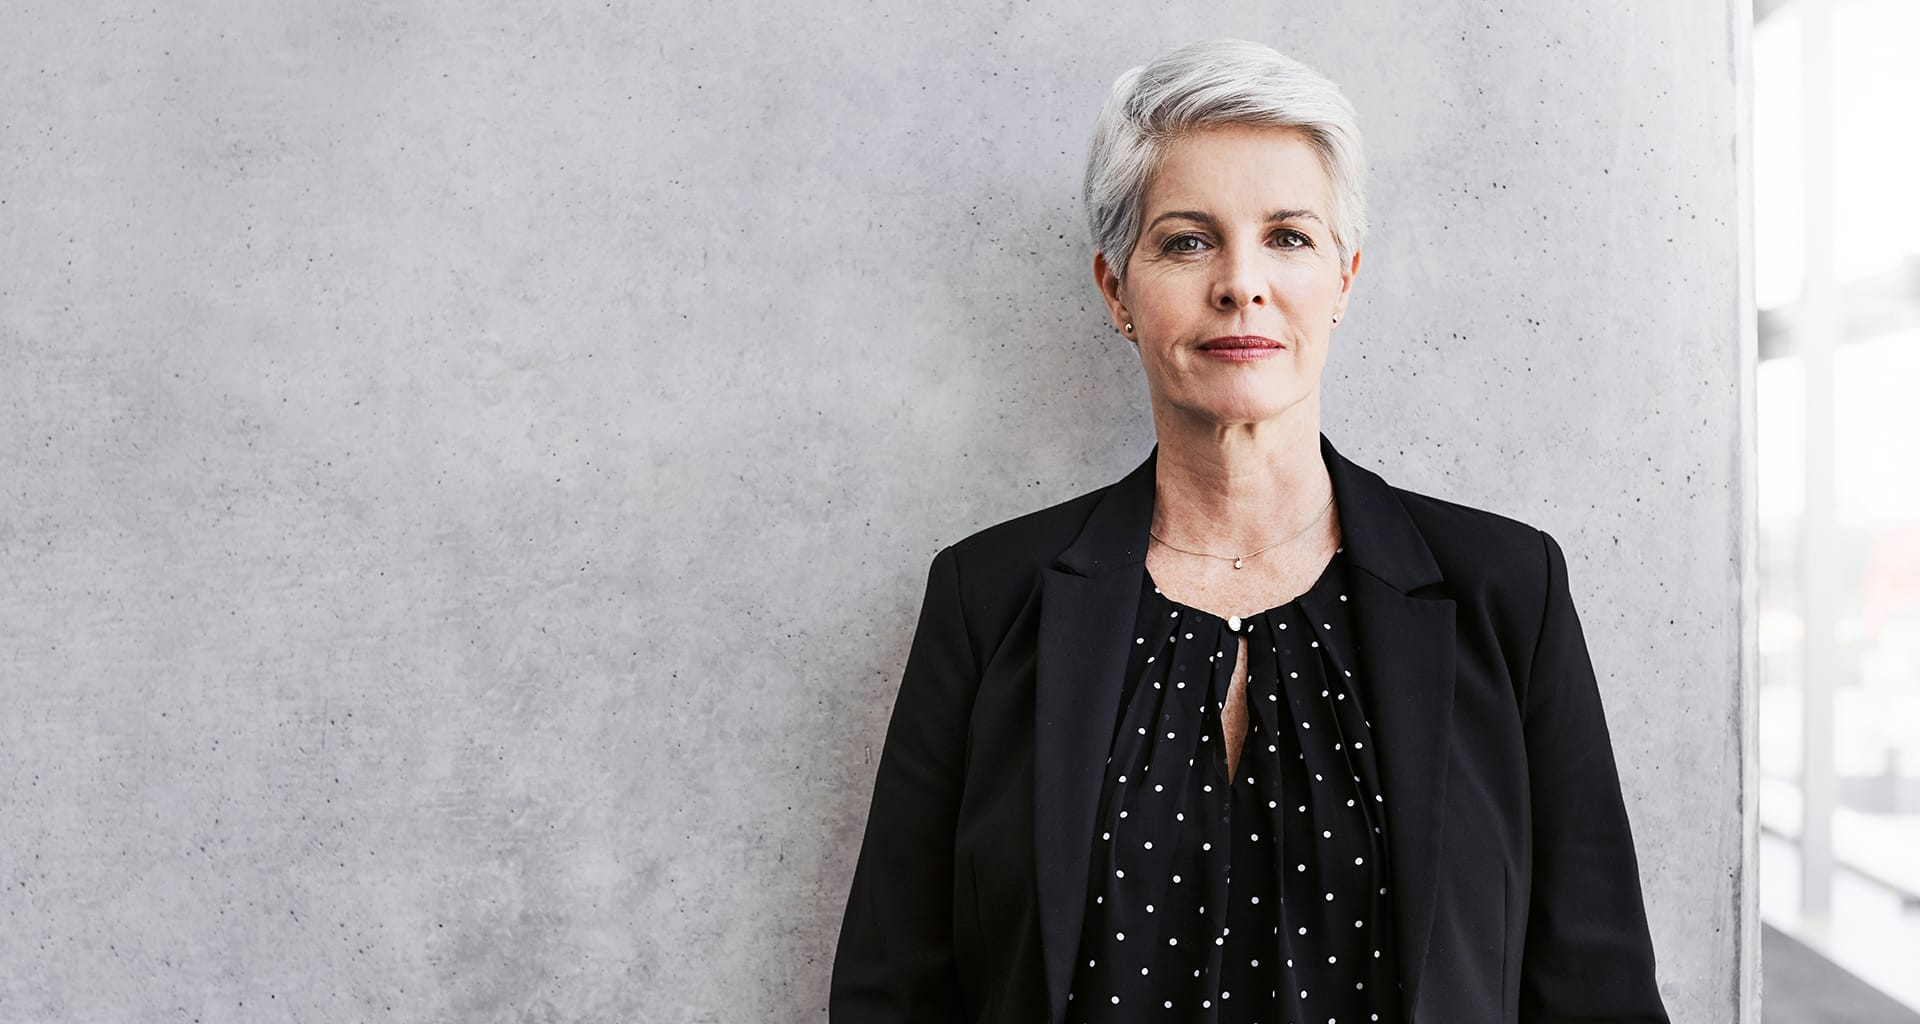 Slender woman with grey hair standing next to a window.